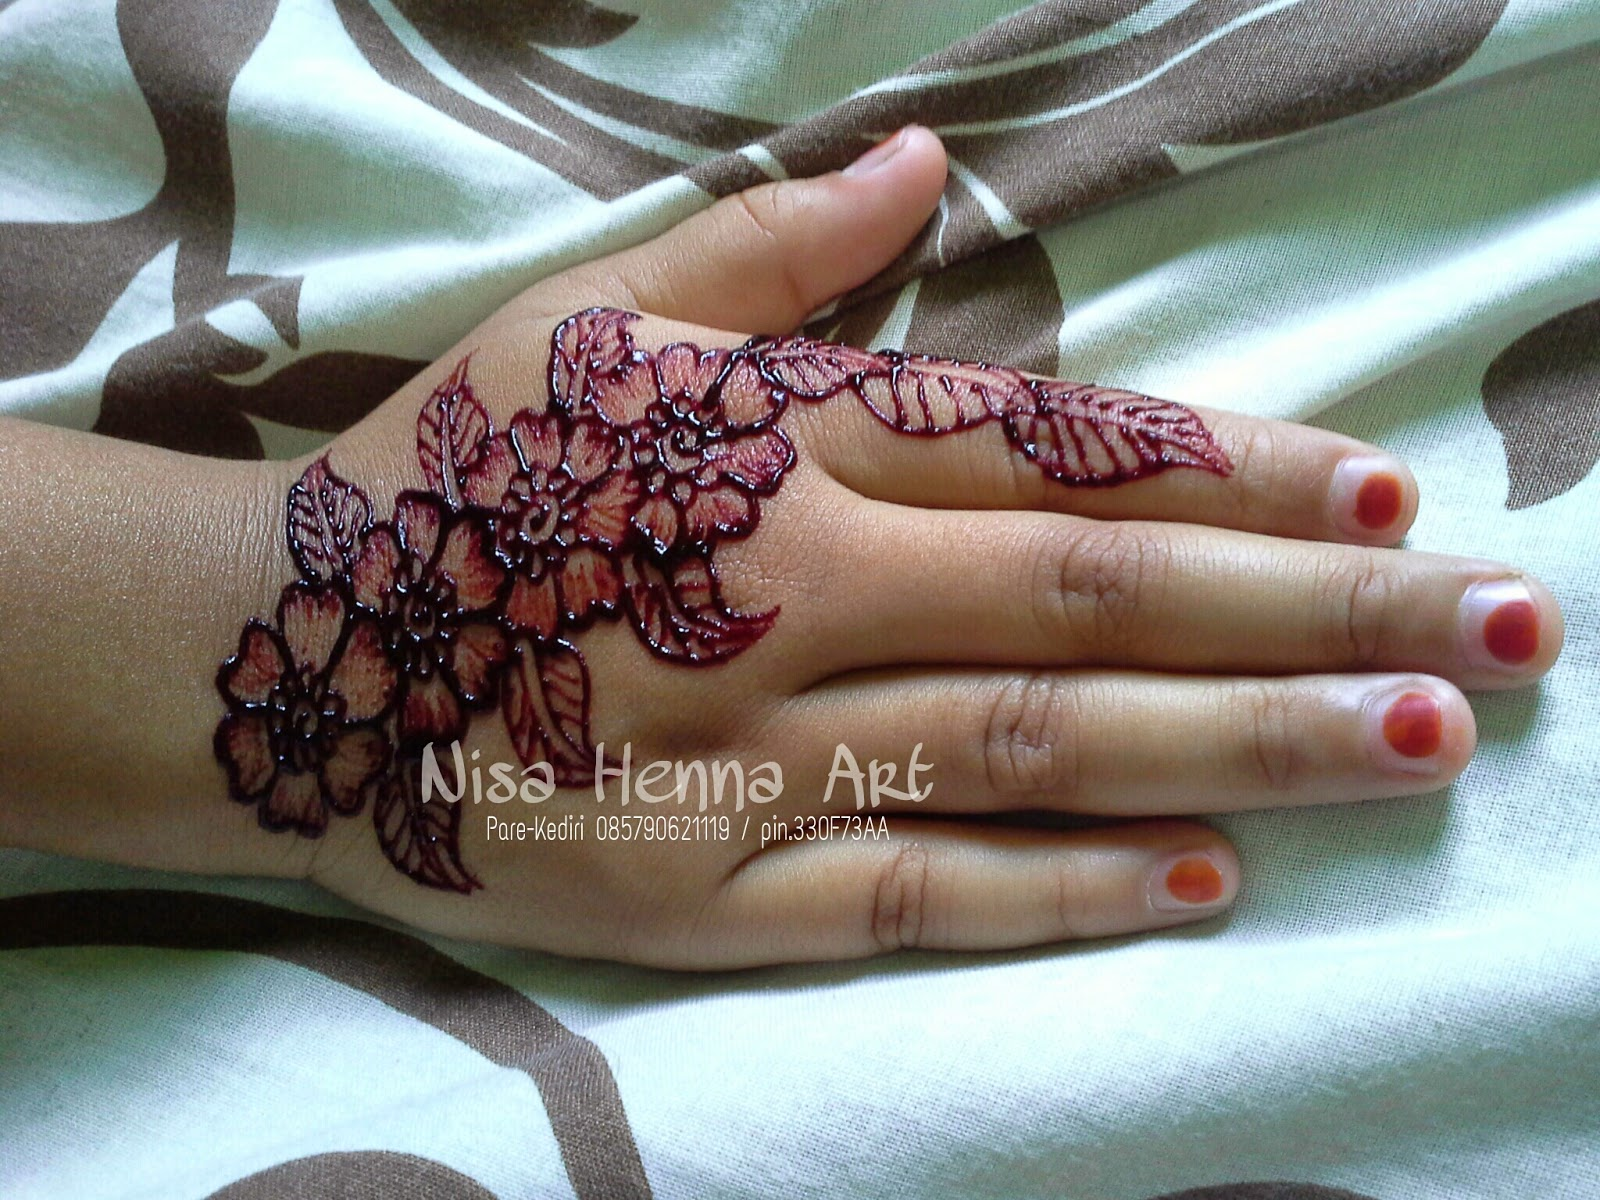 Nisa Henna Art Pare Kediri Photo Henna